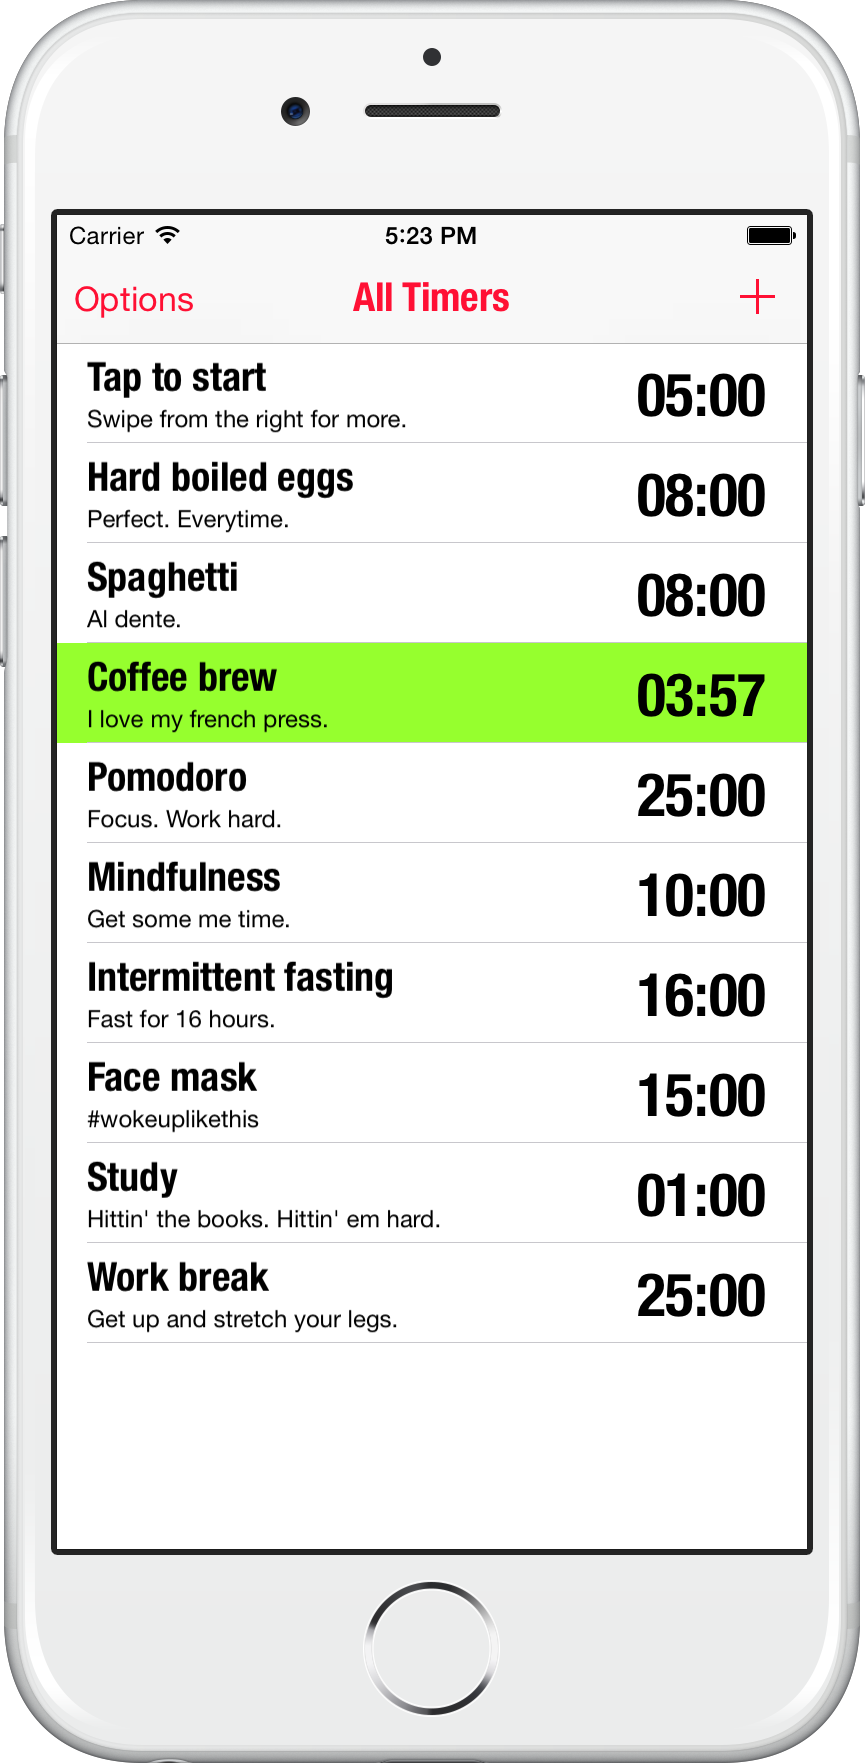 All Timers app for iOS